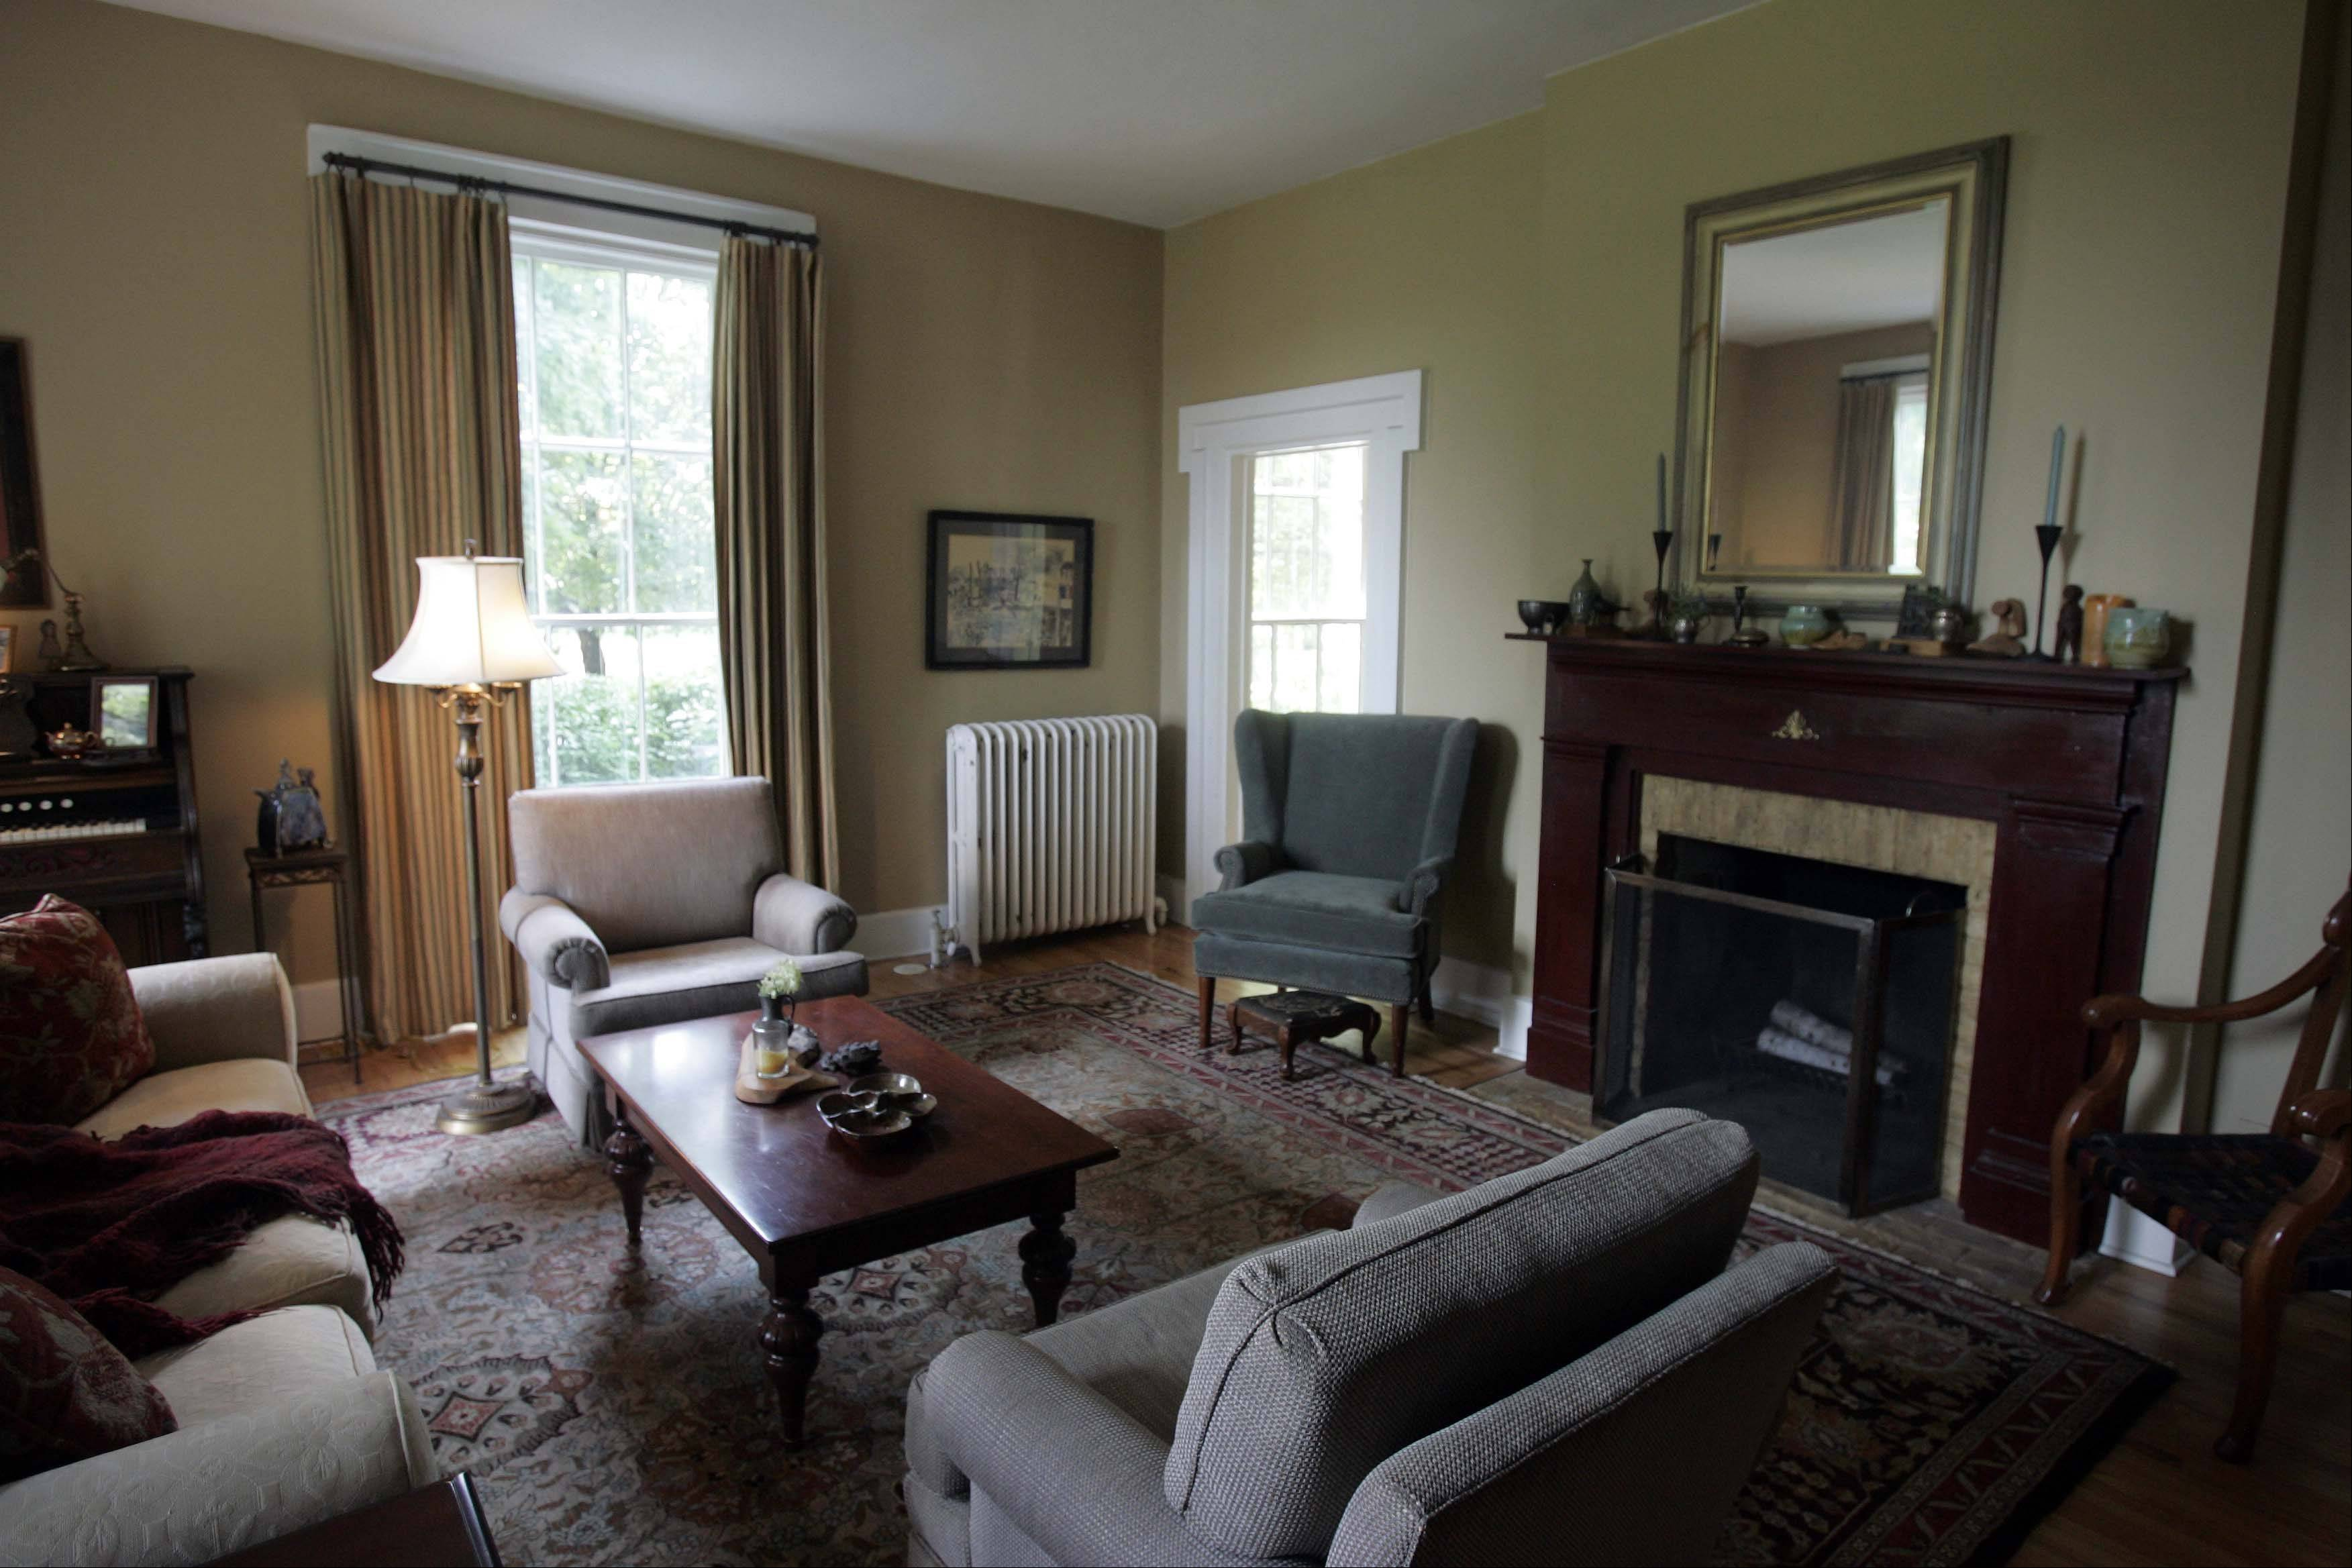 The living room of the Lewis home is complete with an original fireplace.